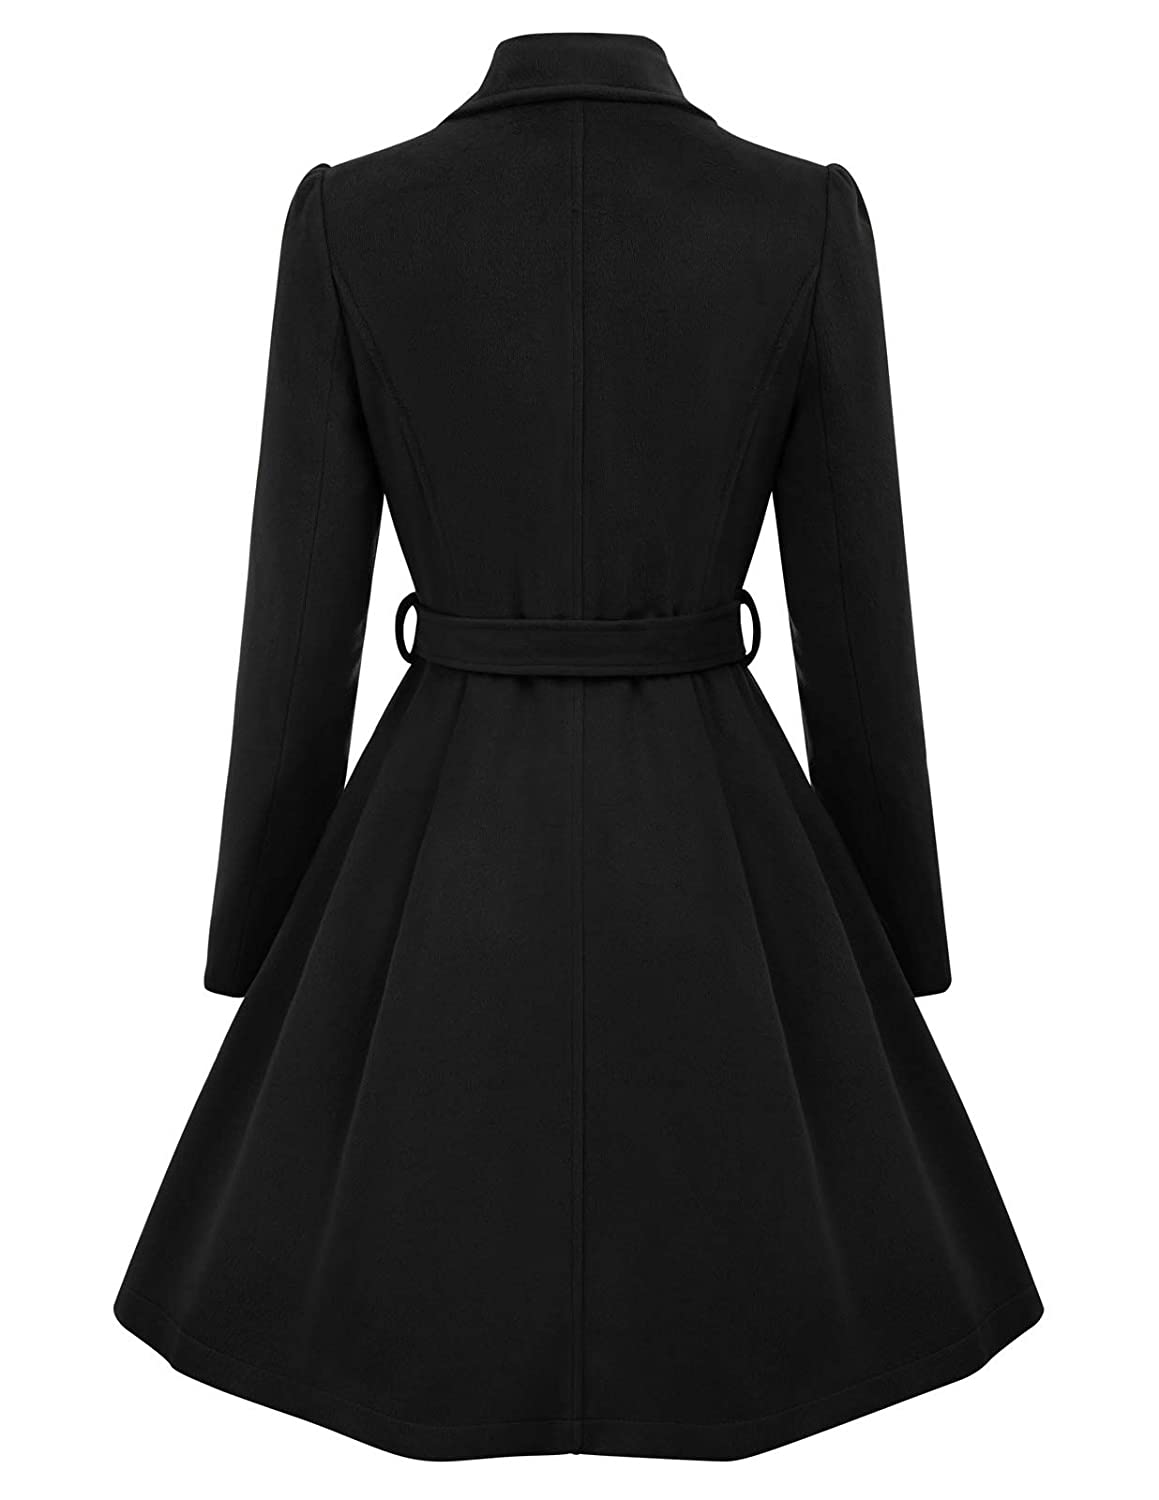 Belle Poque Womens Double Breasted Wool Coats Winter Trench Jacket with Belt